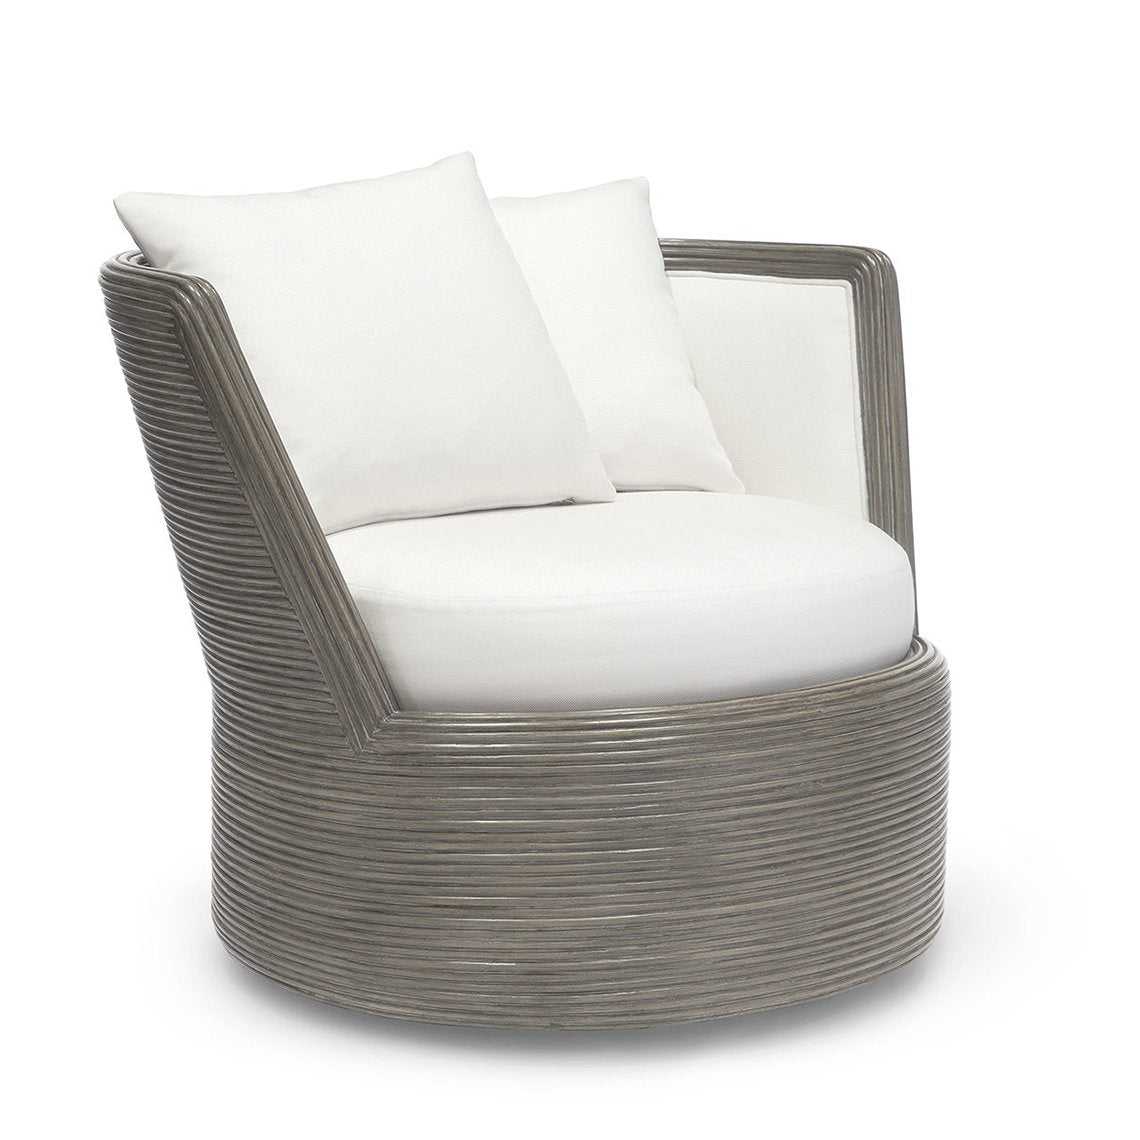 Pismo Swivel Chair